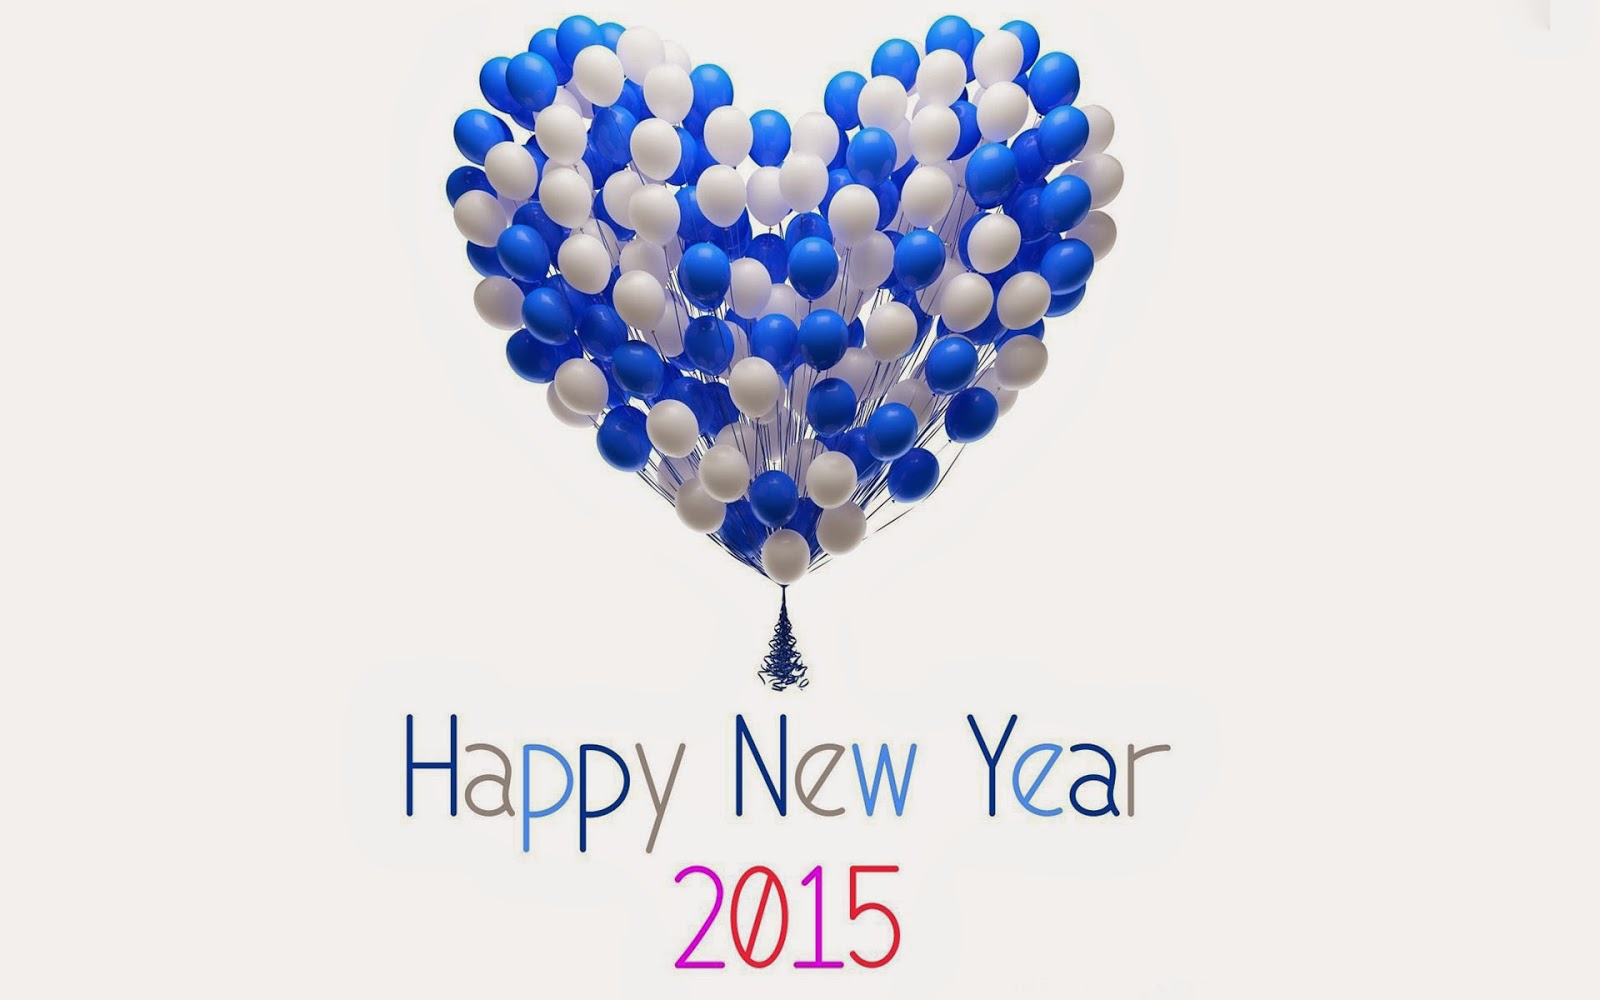 Happy New Year 2015 Wallpapers 1360 x 768 Download Happy 1600x1000